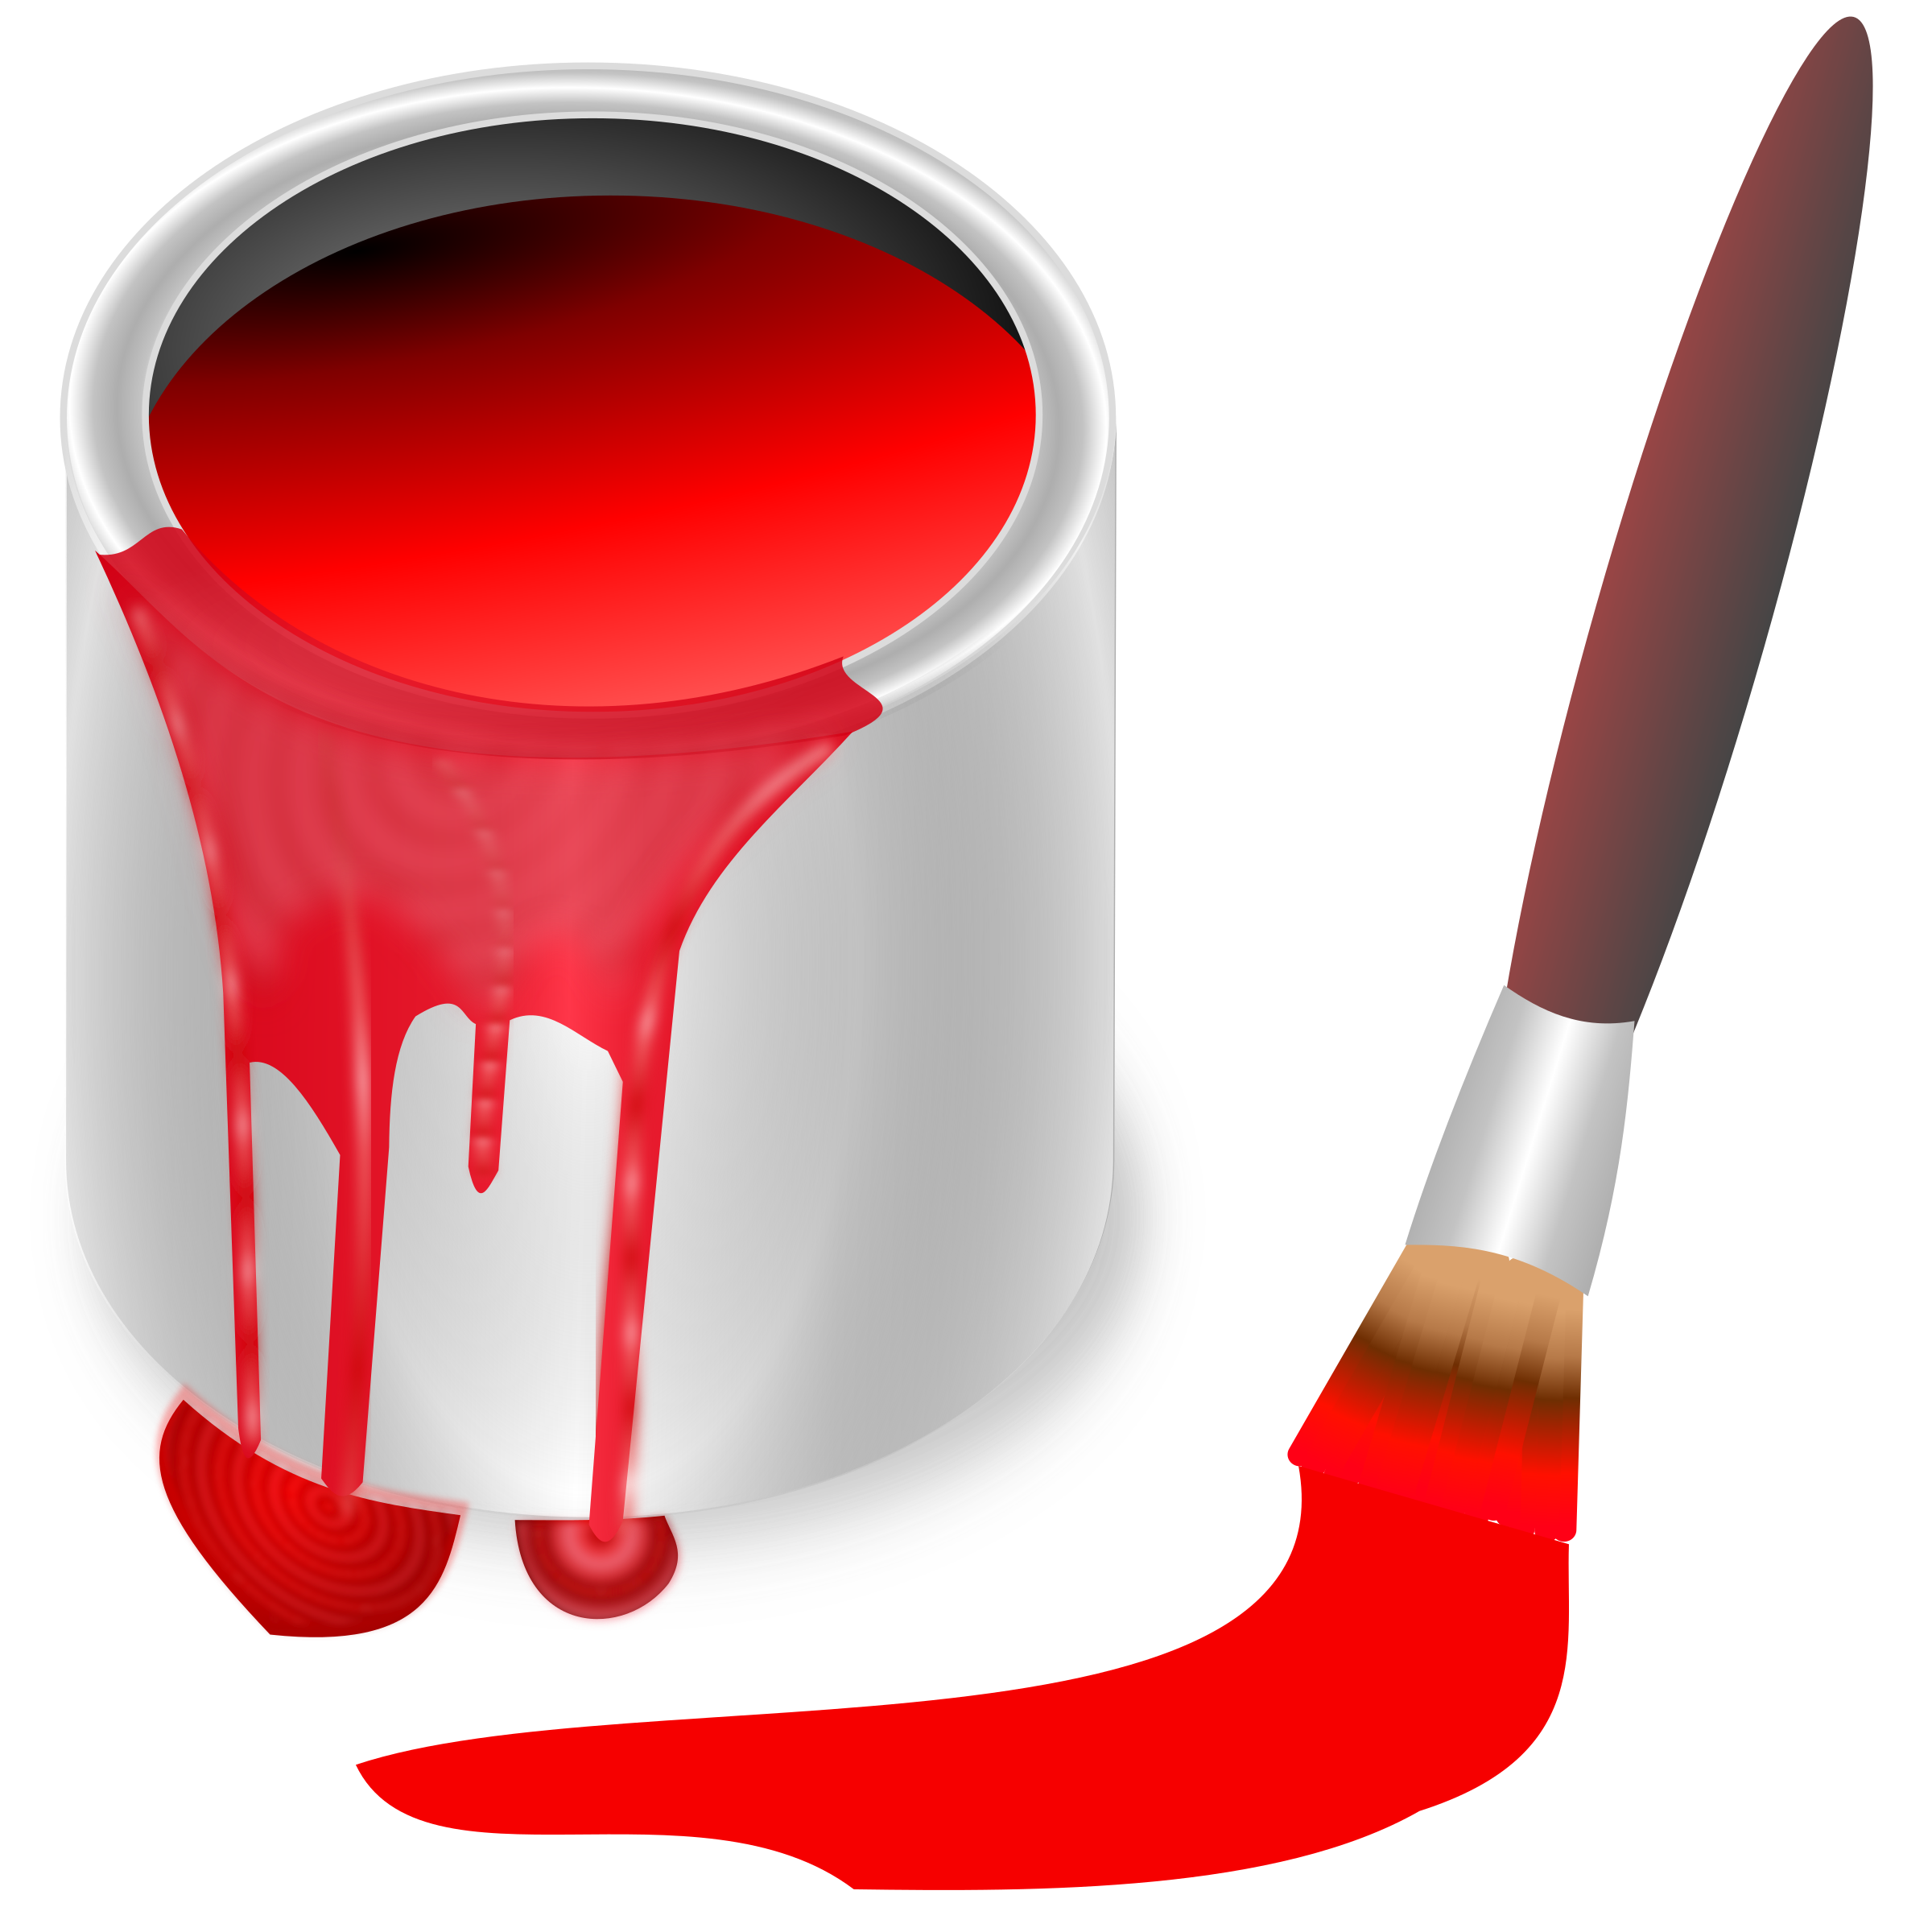 Bucket transparent coloring. Color red icons png